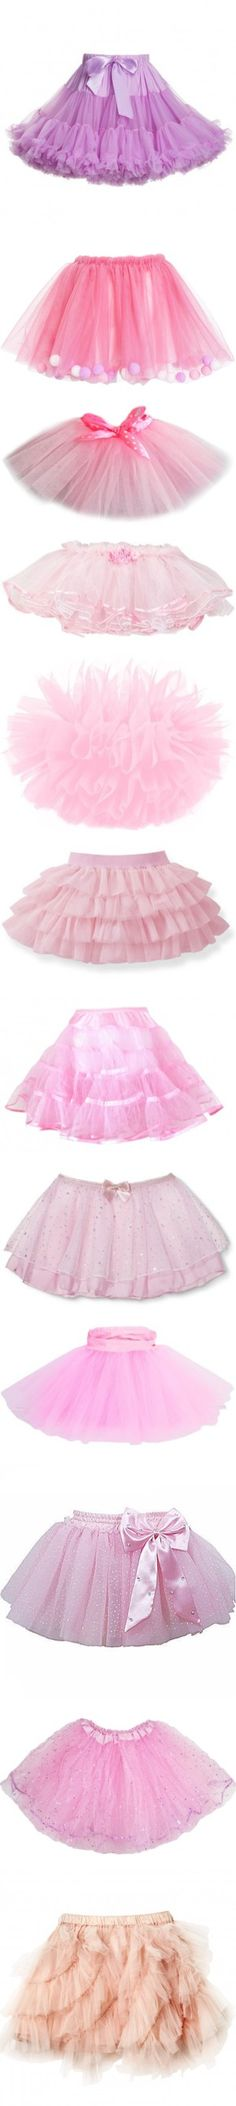 f28fcbdba tutus for dolls by kristie-miles on Polyvore featuring skirts, baby, pink,  bottoms, kids clothes, tutu, petticoat, dance, women's fashion and tulle  skirt. ...